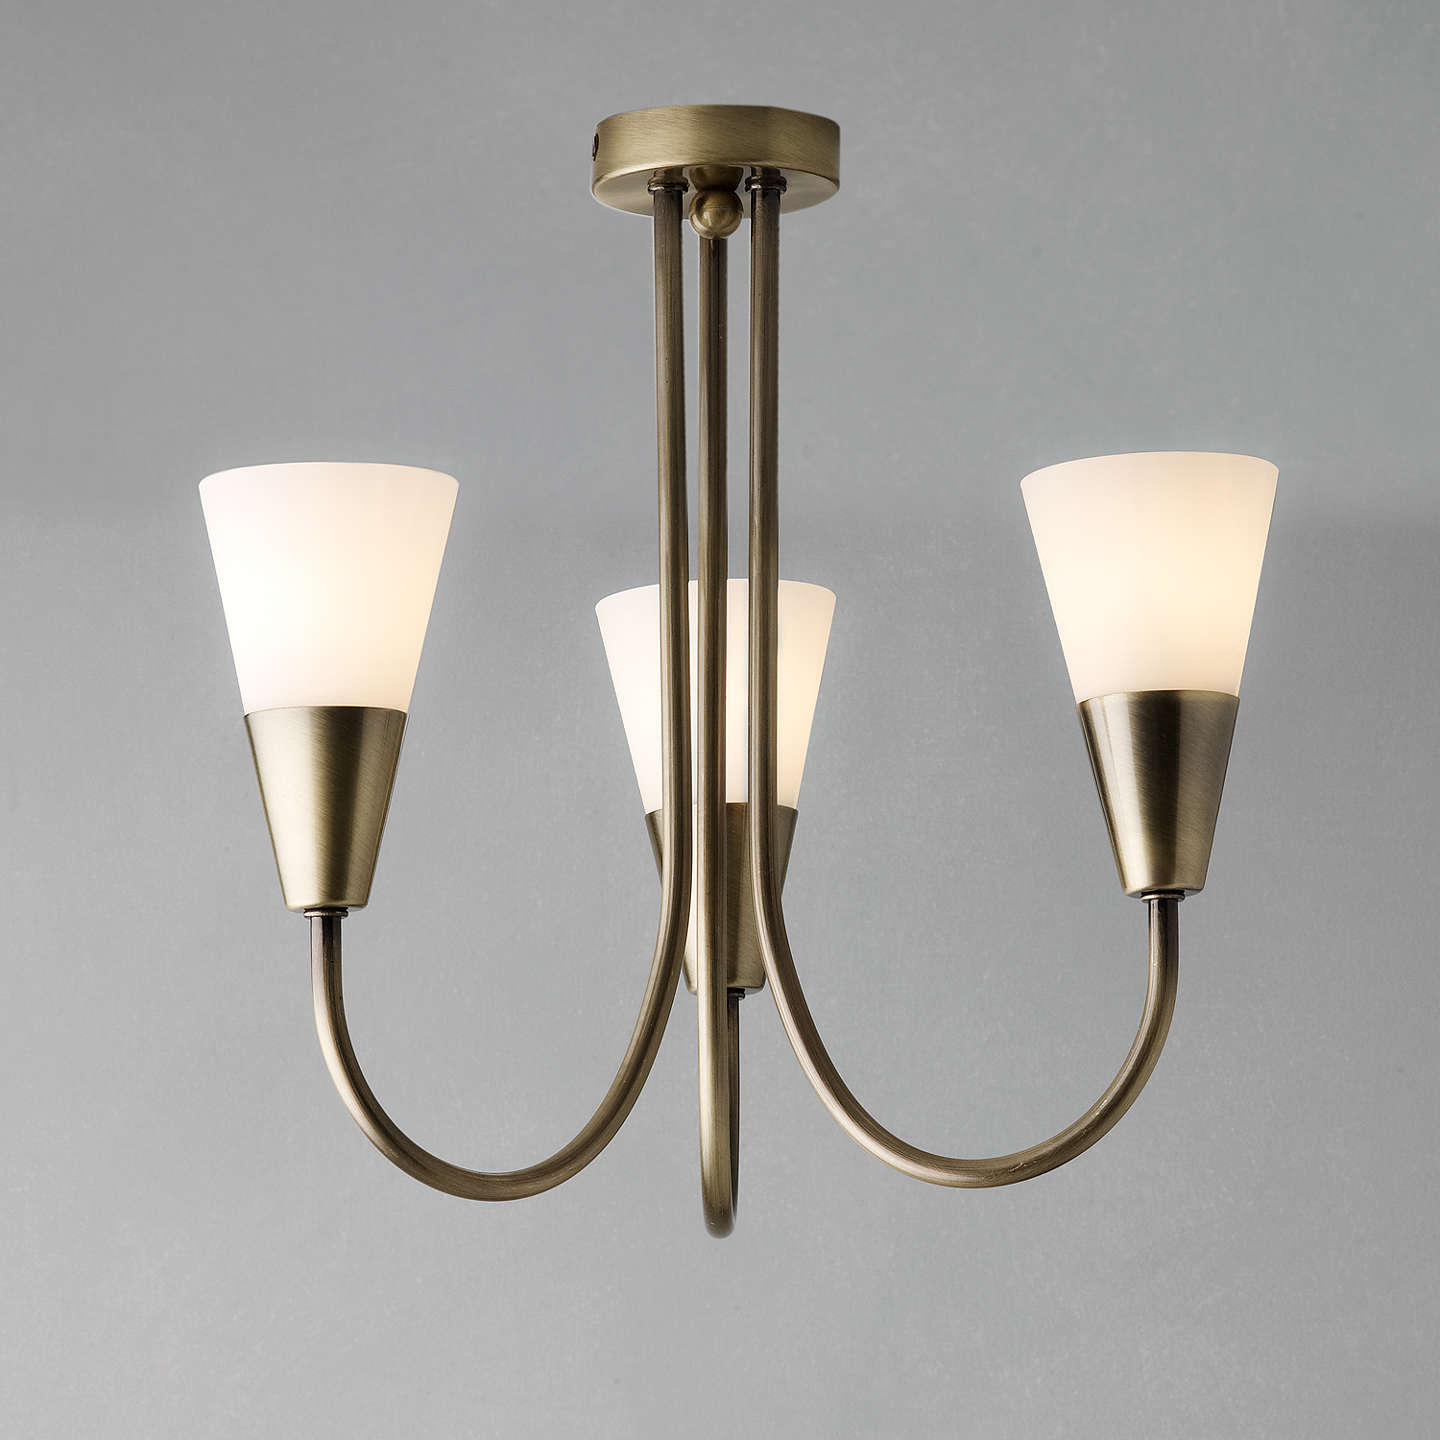 John lewis the basics lulu ceiling light 3 arm at john lewis buyjohn lewis the basics lulu ceiling light 3 arm antique brass online at johnlewis aloadofball Image collections